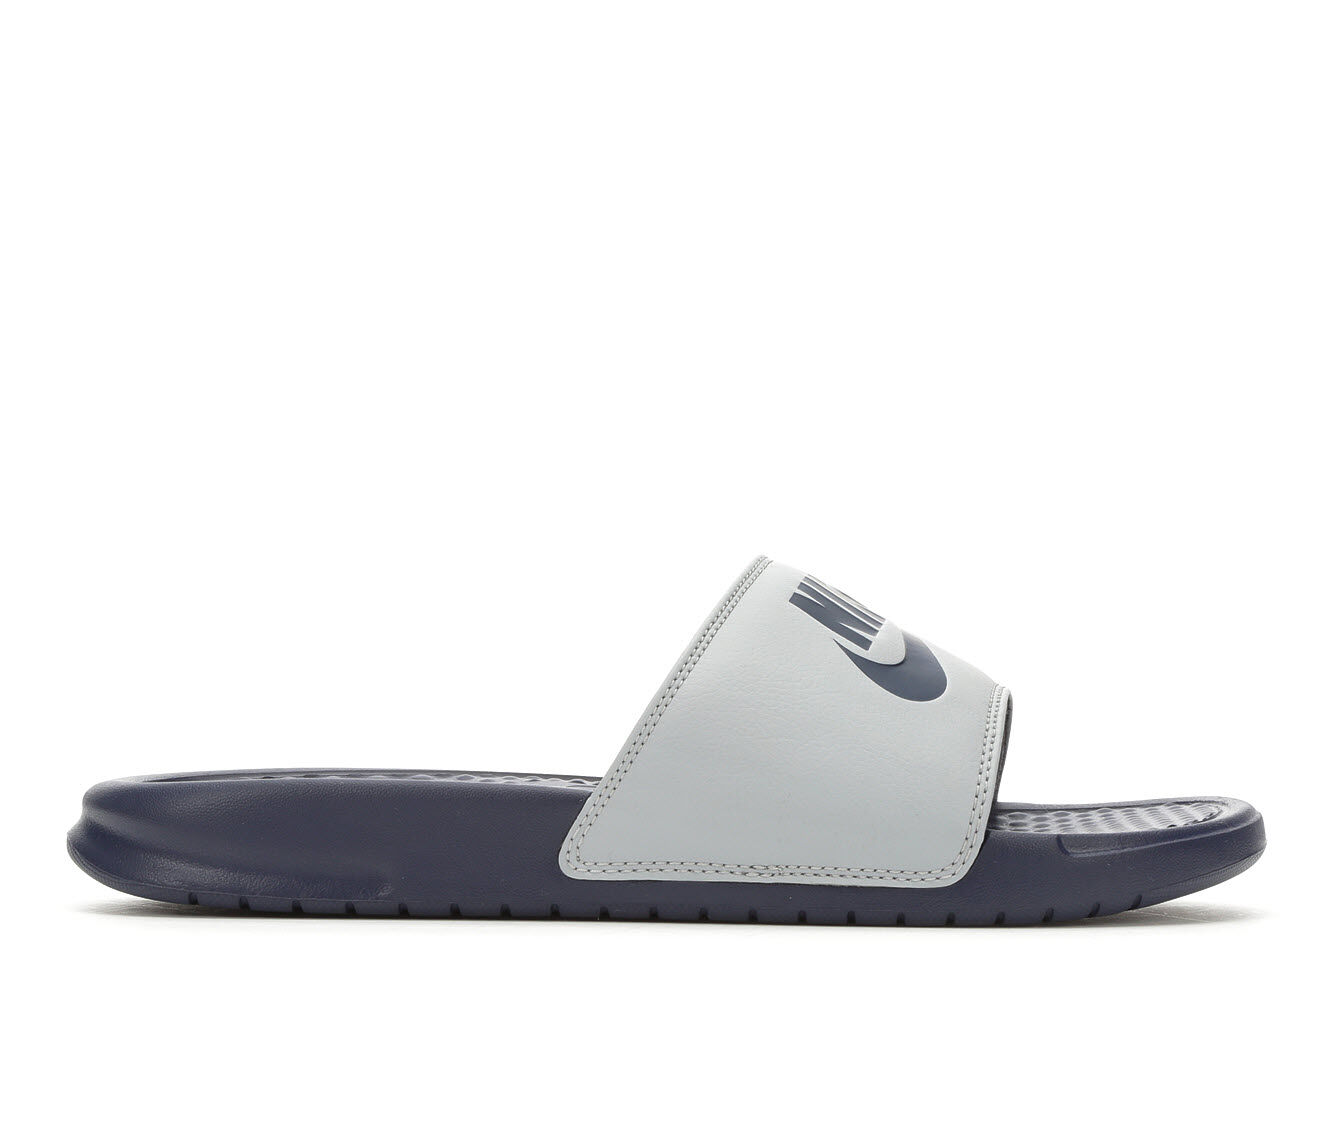 Buy Authentic Men's Nike Benassi JDI Sport Slides Wolf Grey/Navy